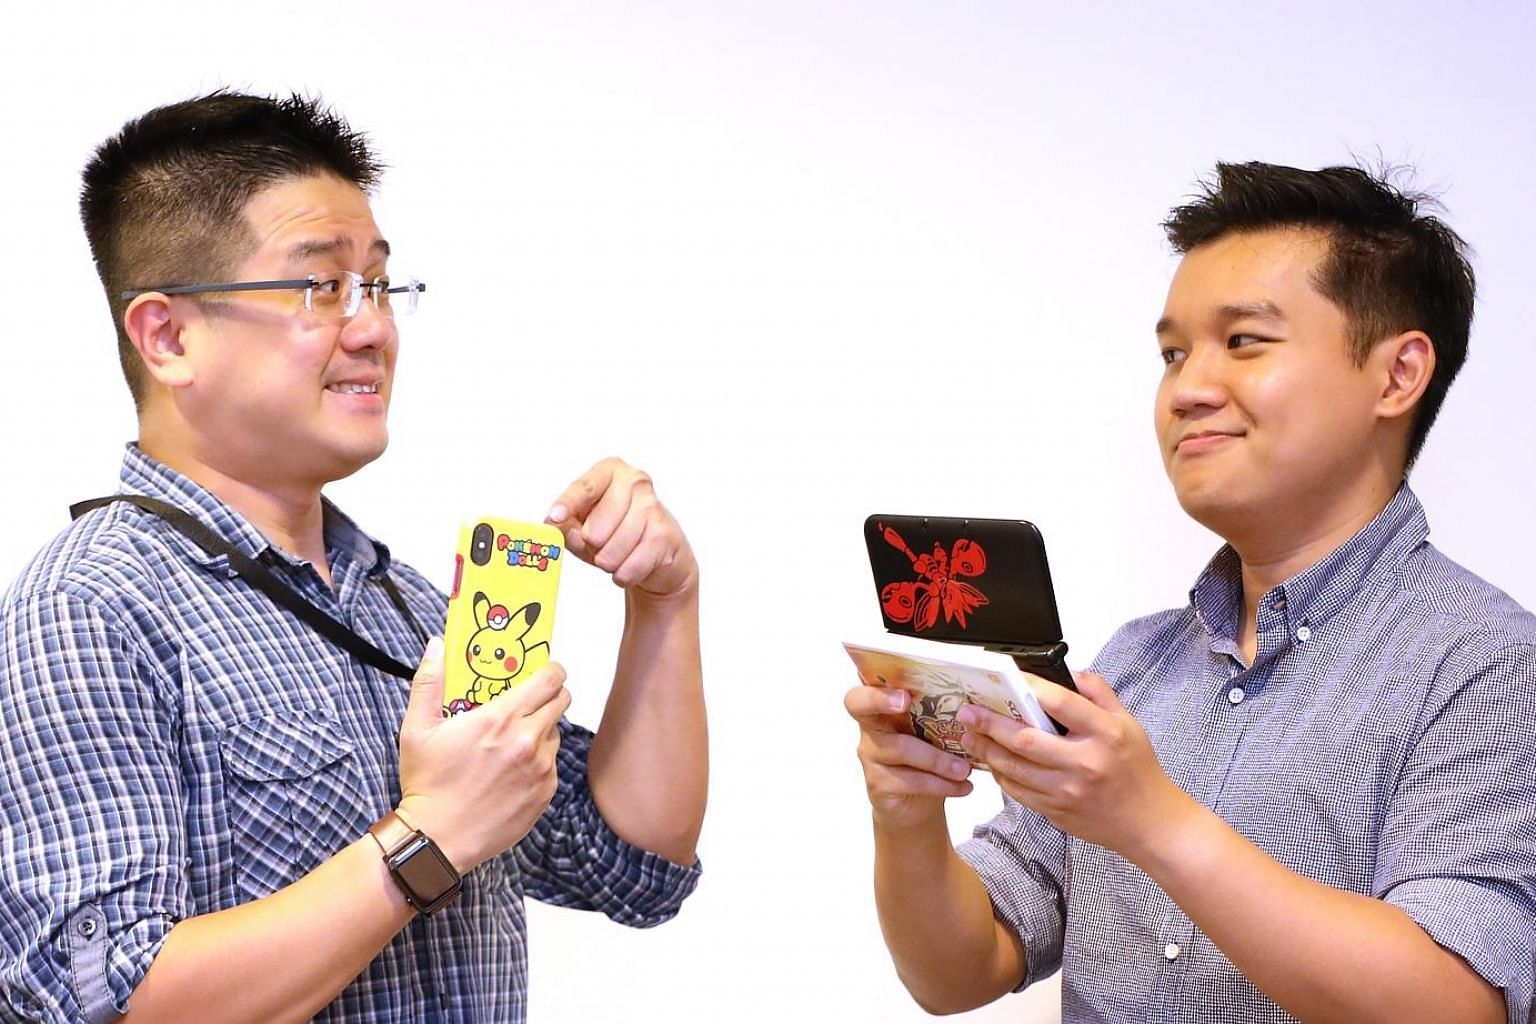 To play or not to play? Tech writers Trevor Tan (far left) and Lester Hio feel differently about Pokemon Go.